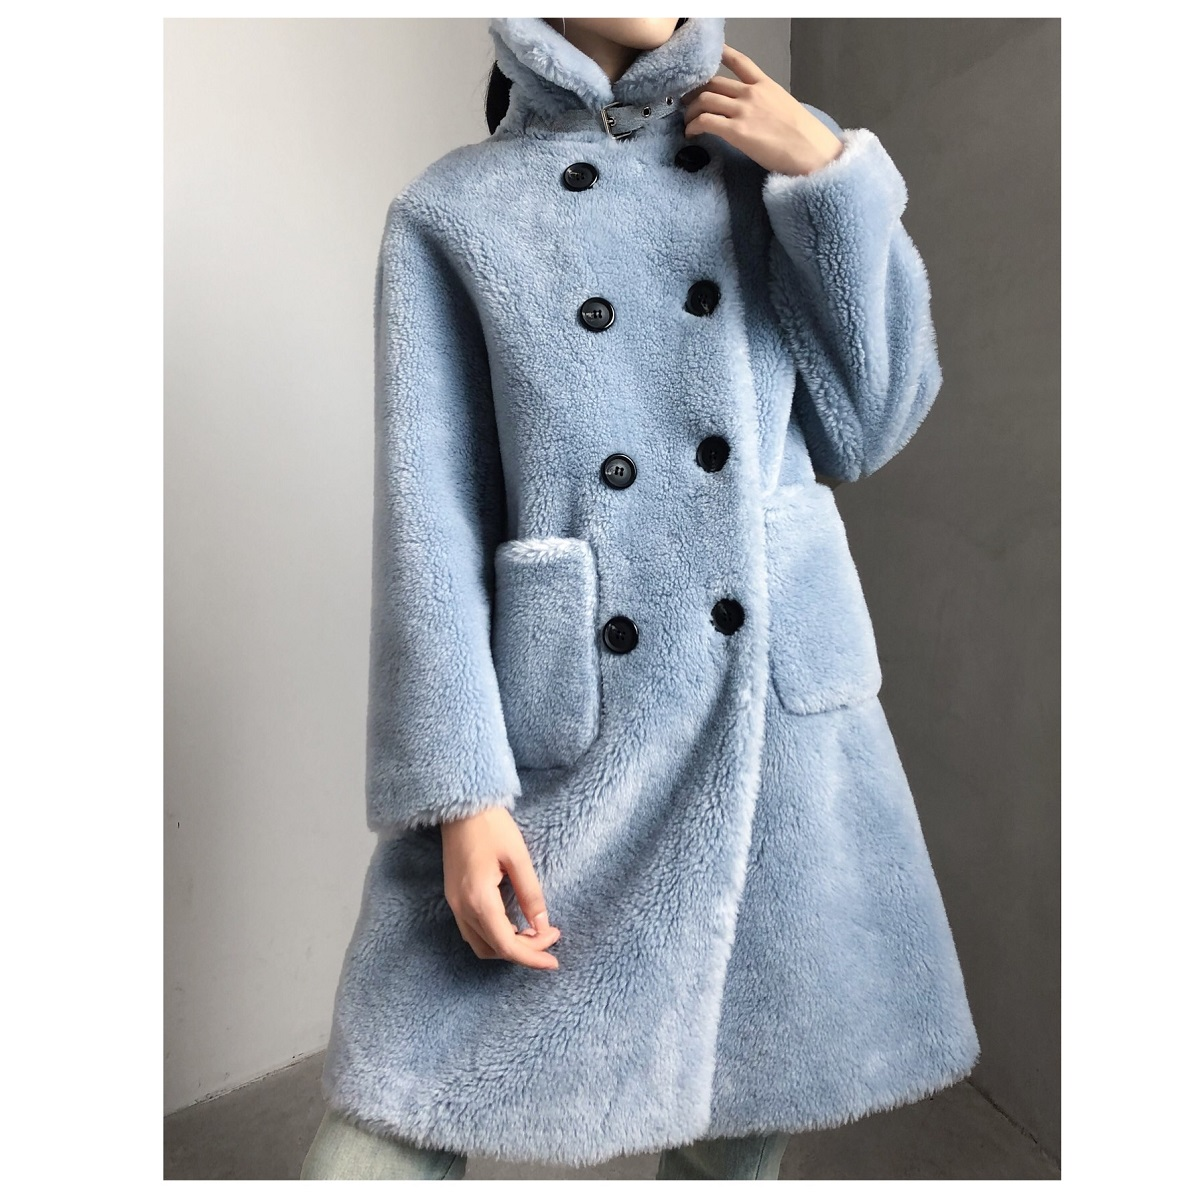 OFTBUY 2019 New 100% Wool Content Woven Fabric Coat Winter Jacket Women Parka Double Breasted Thick Warm Loose Outerwear Brand